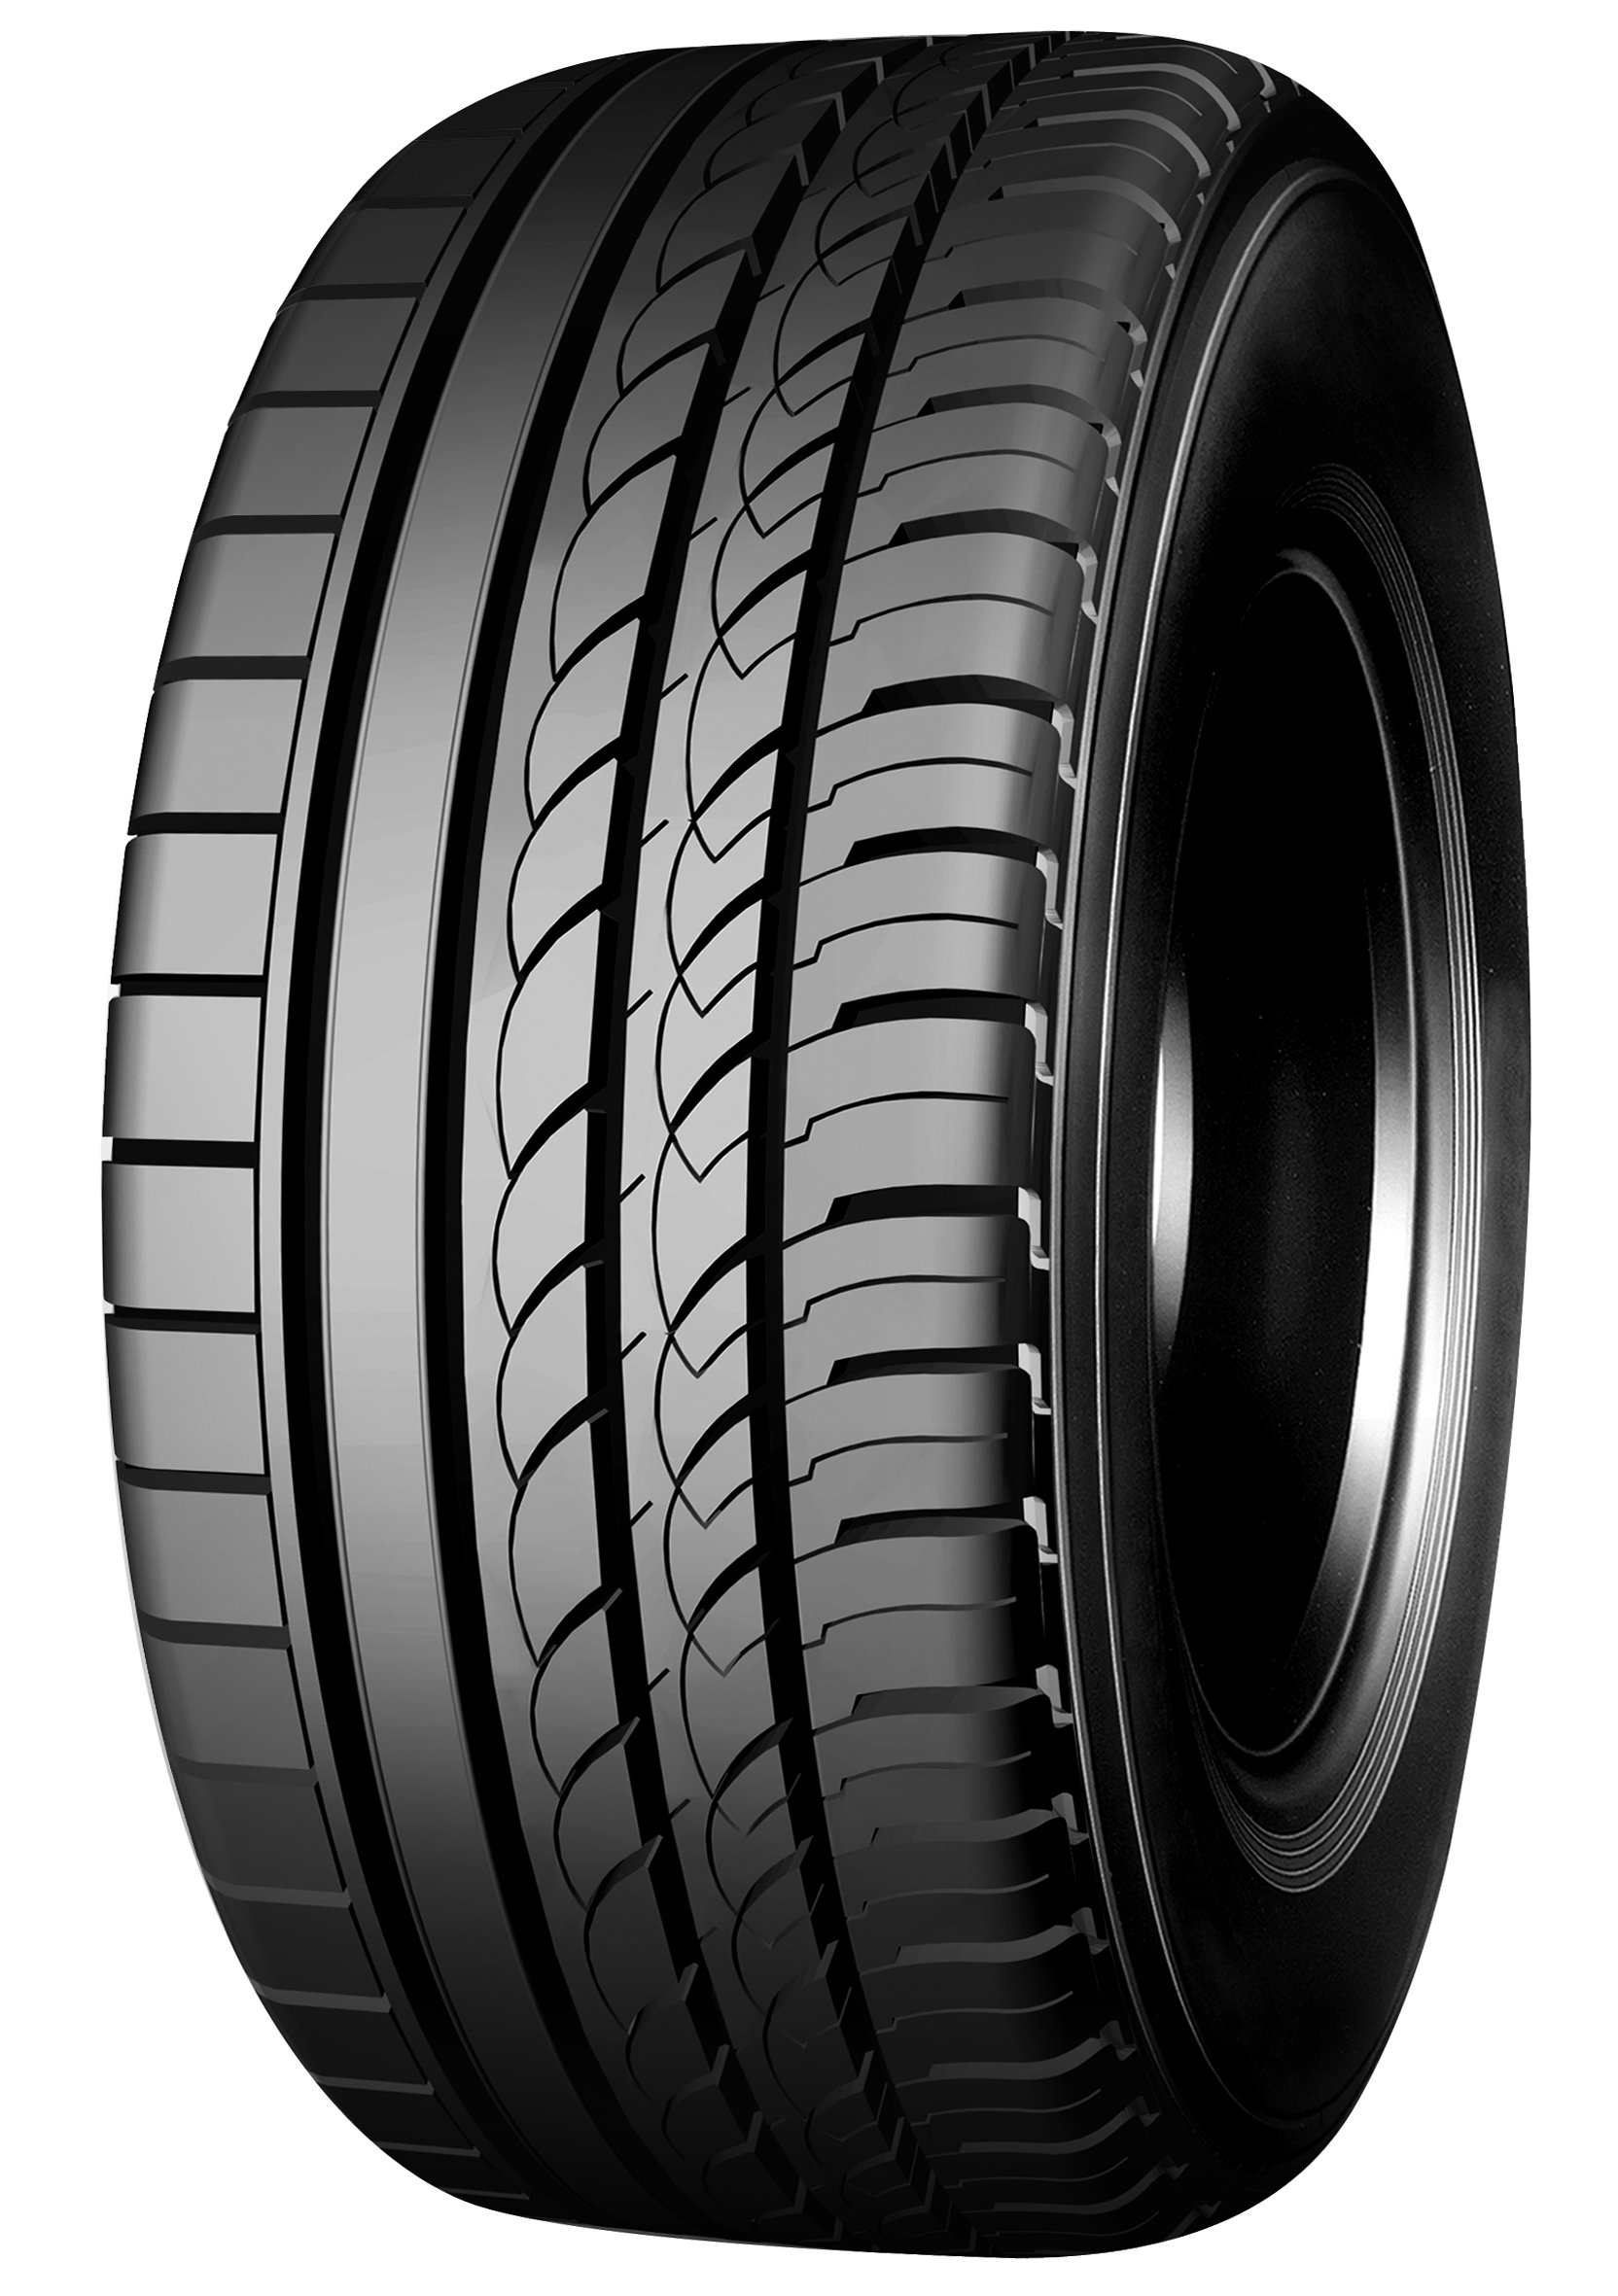 Enjoy Tyre's Rotalla F105 UHP tyre